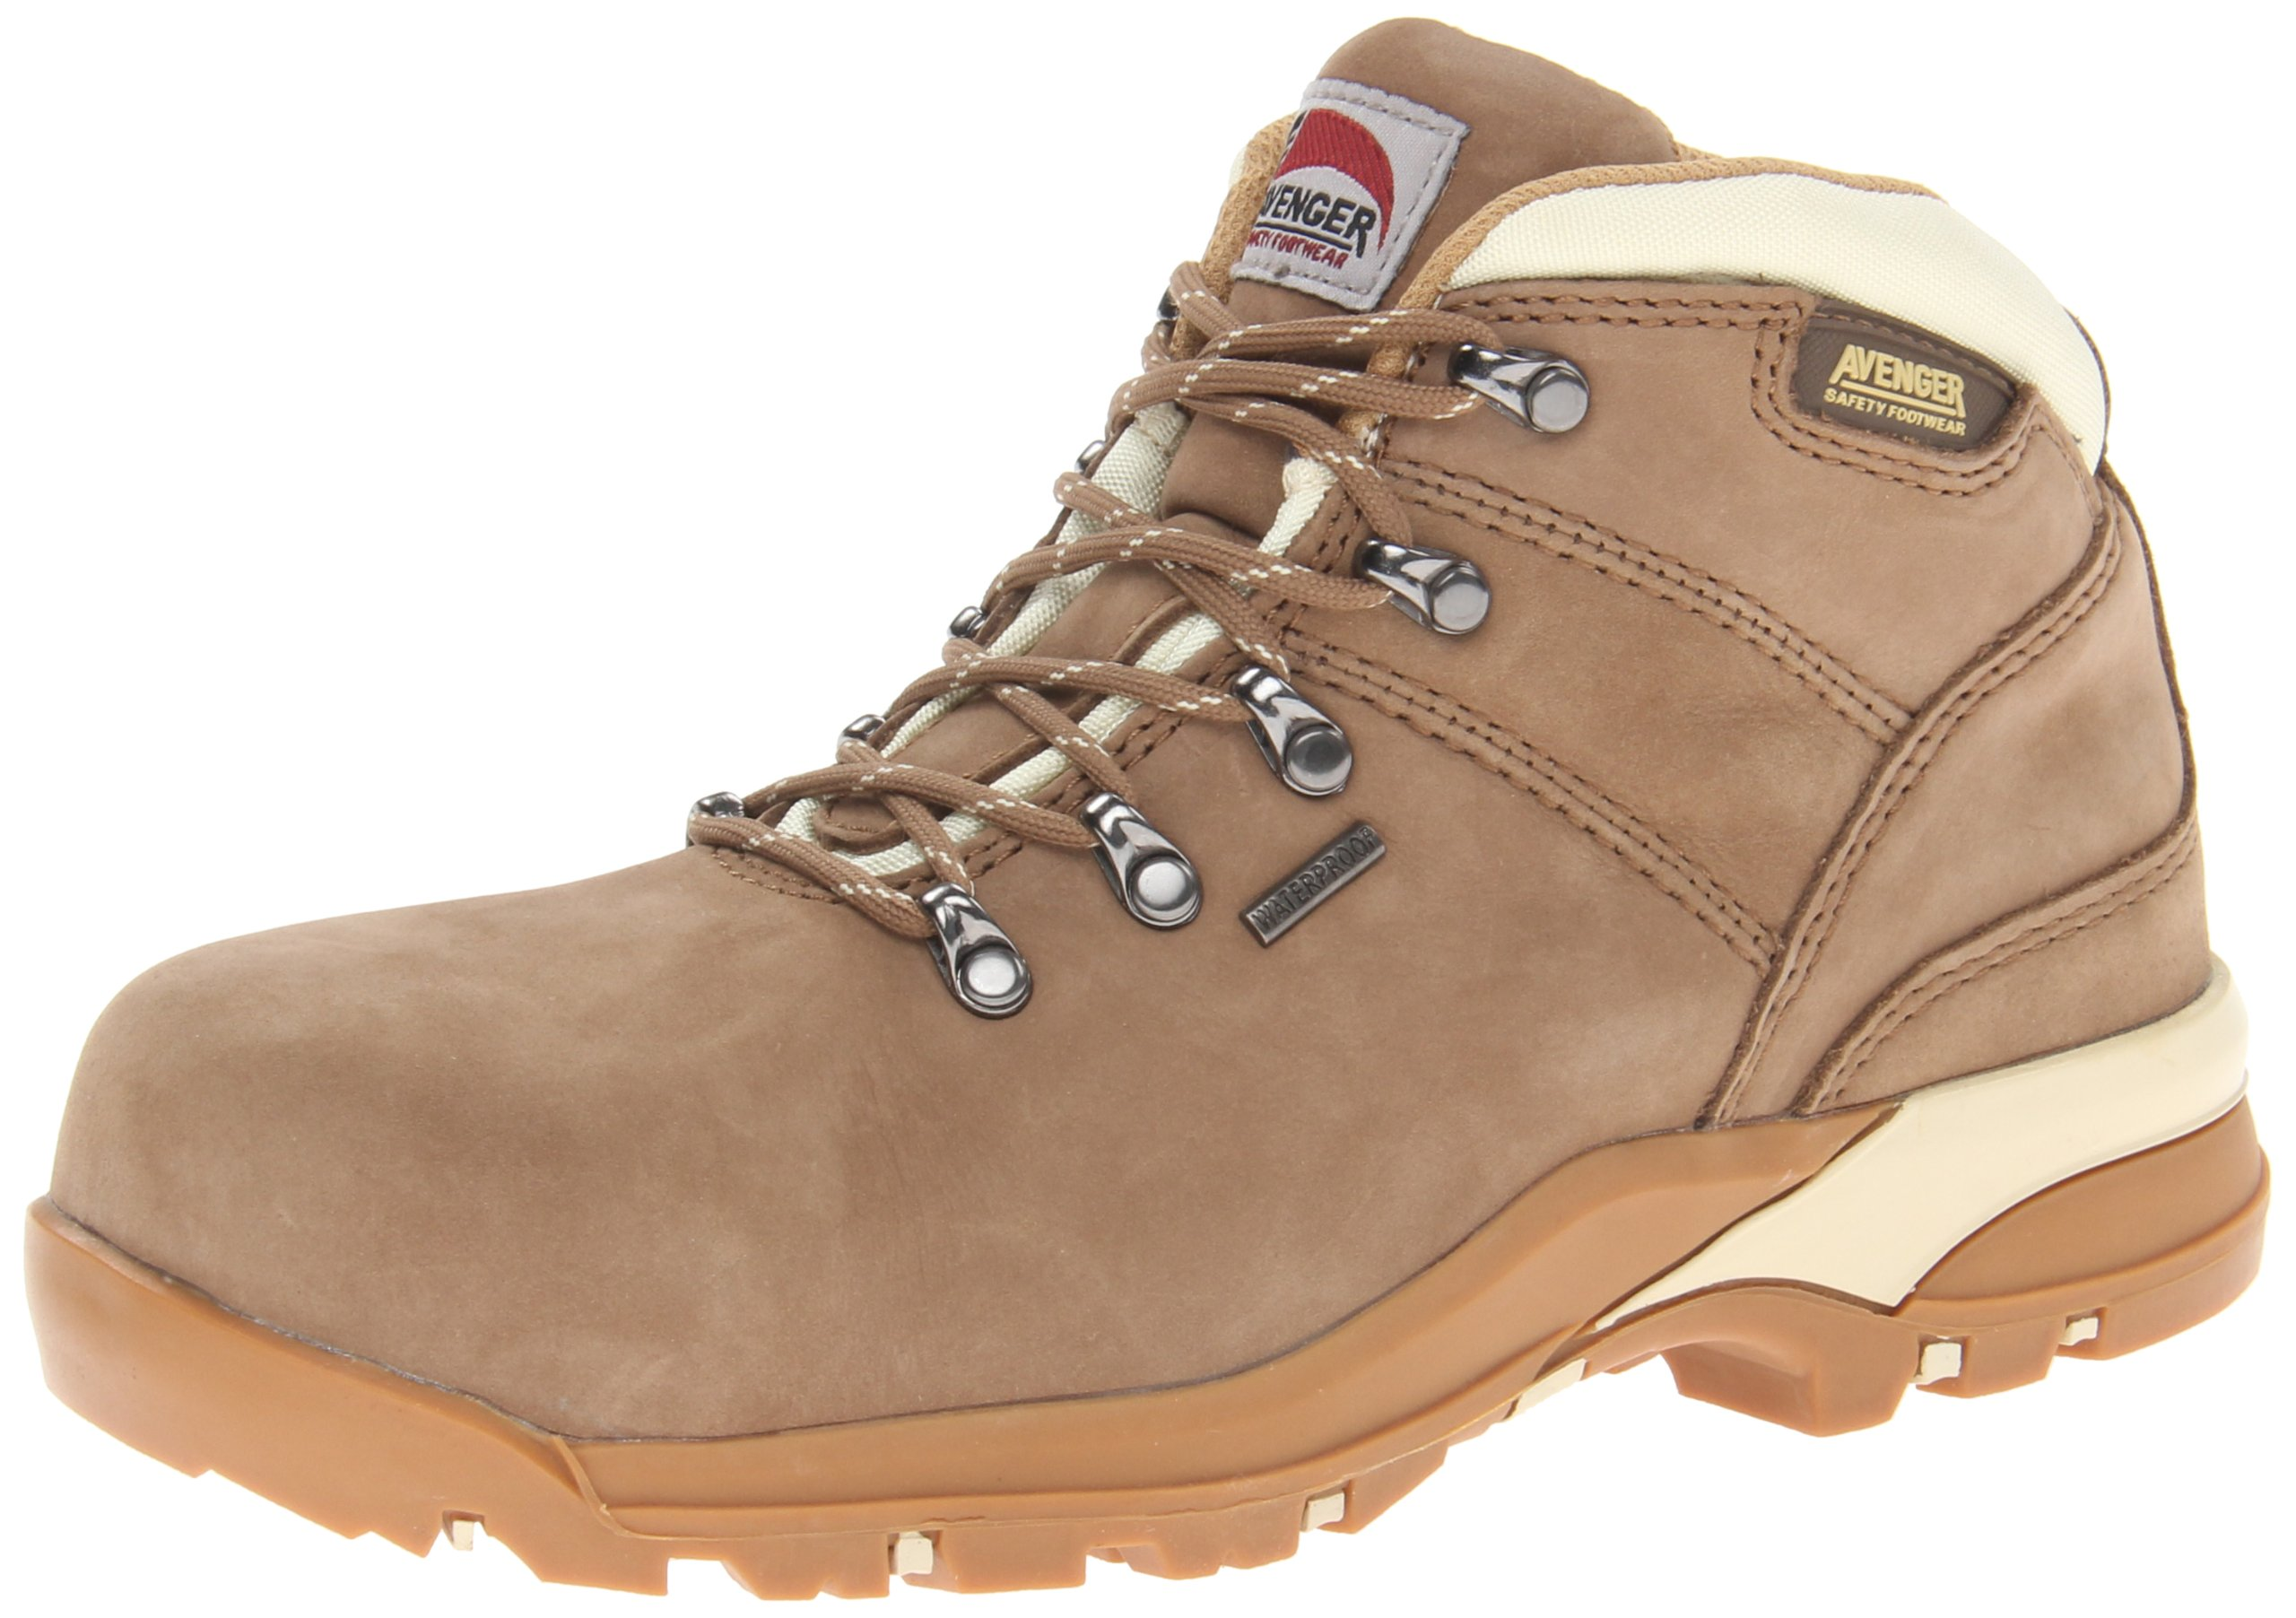 Avenger Safety Footwear Women's Hiker Boot,Tan Nubuck,7 M US